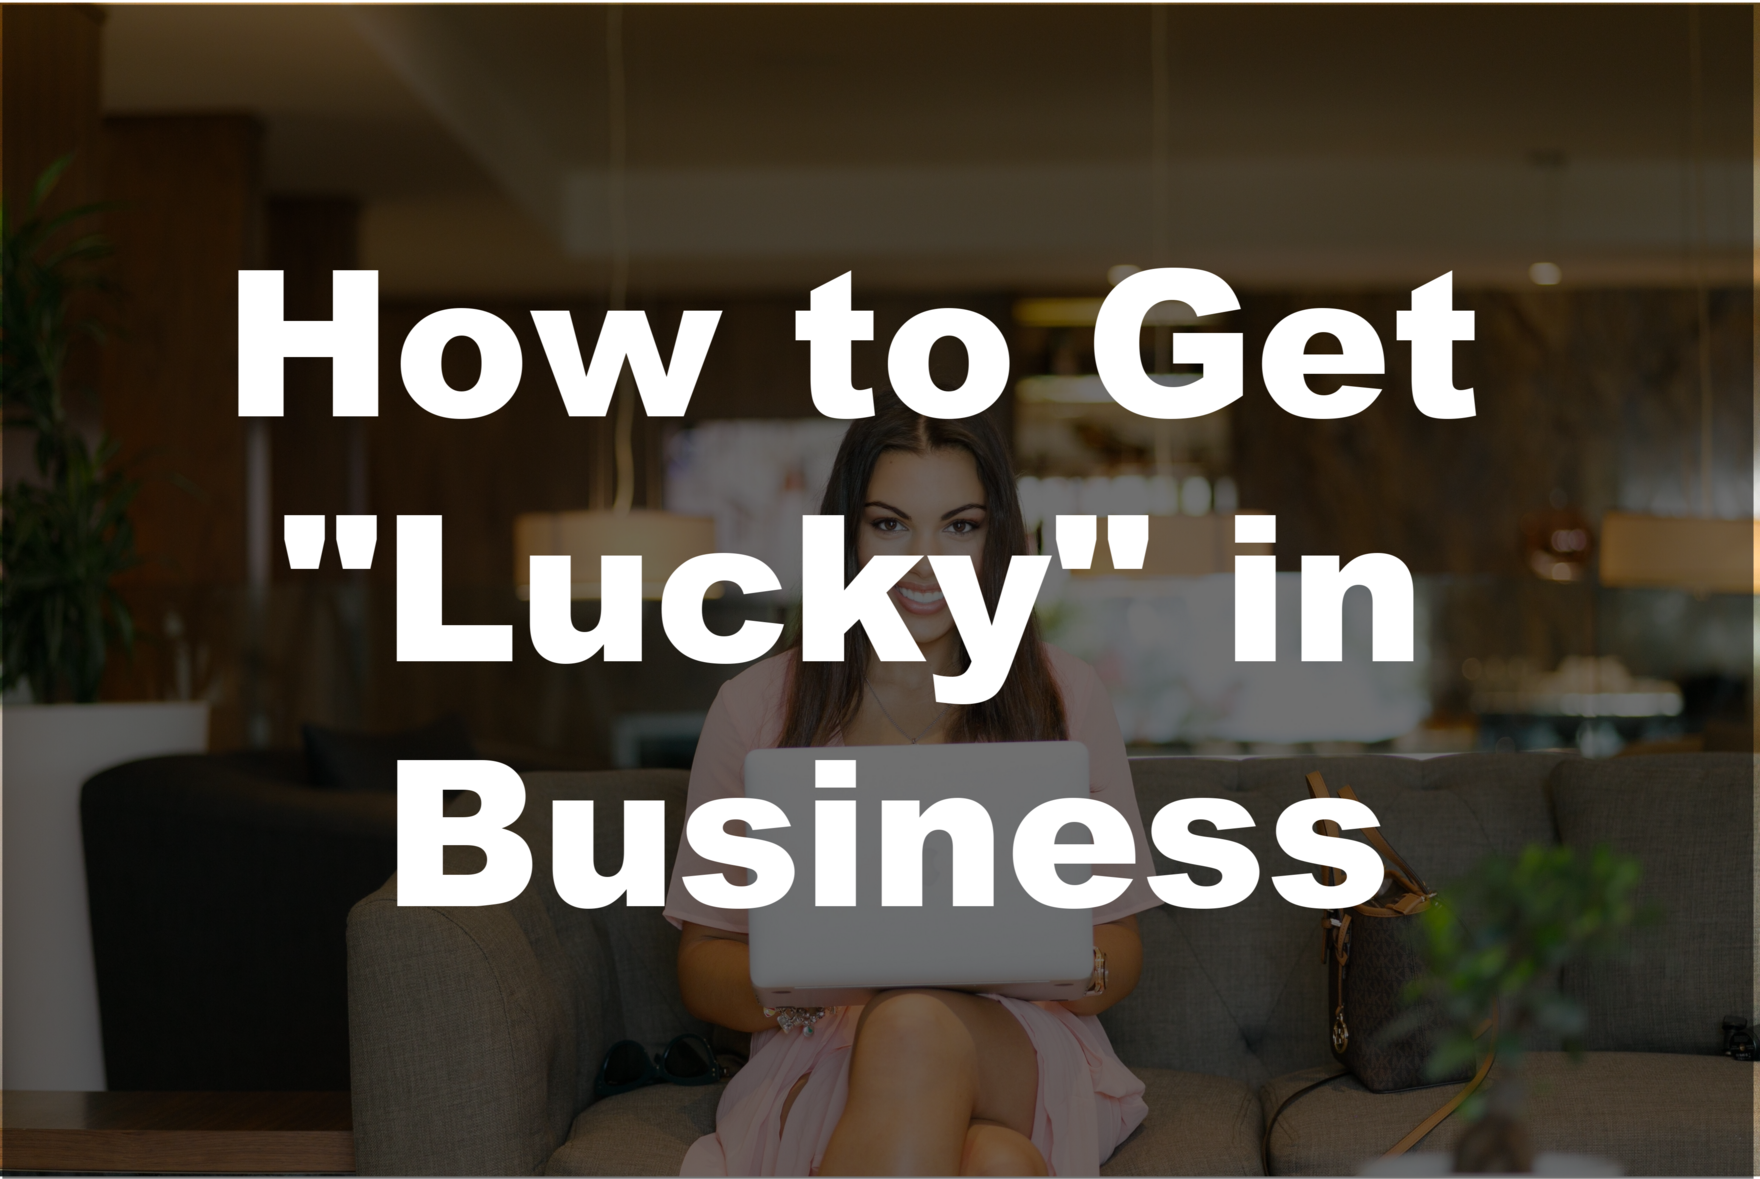 How to get lucky